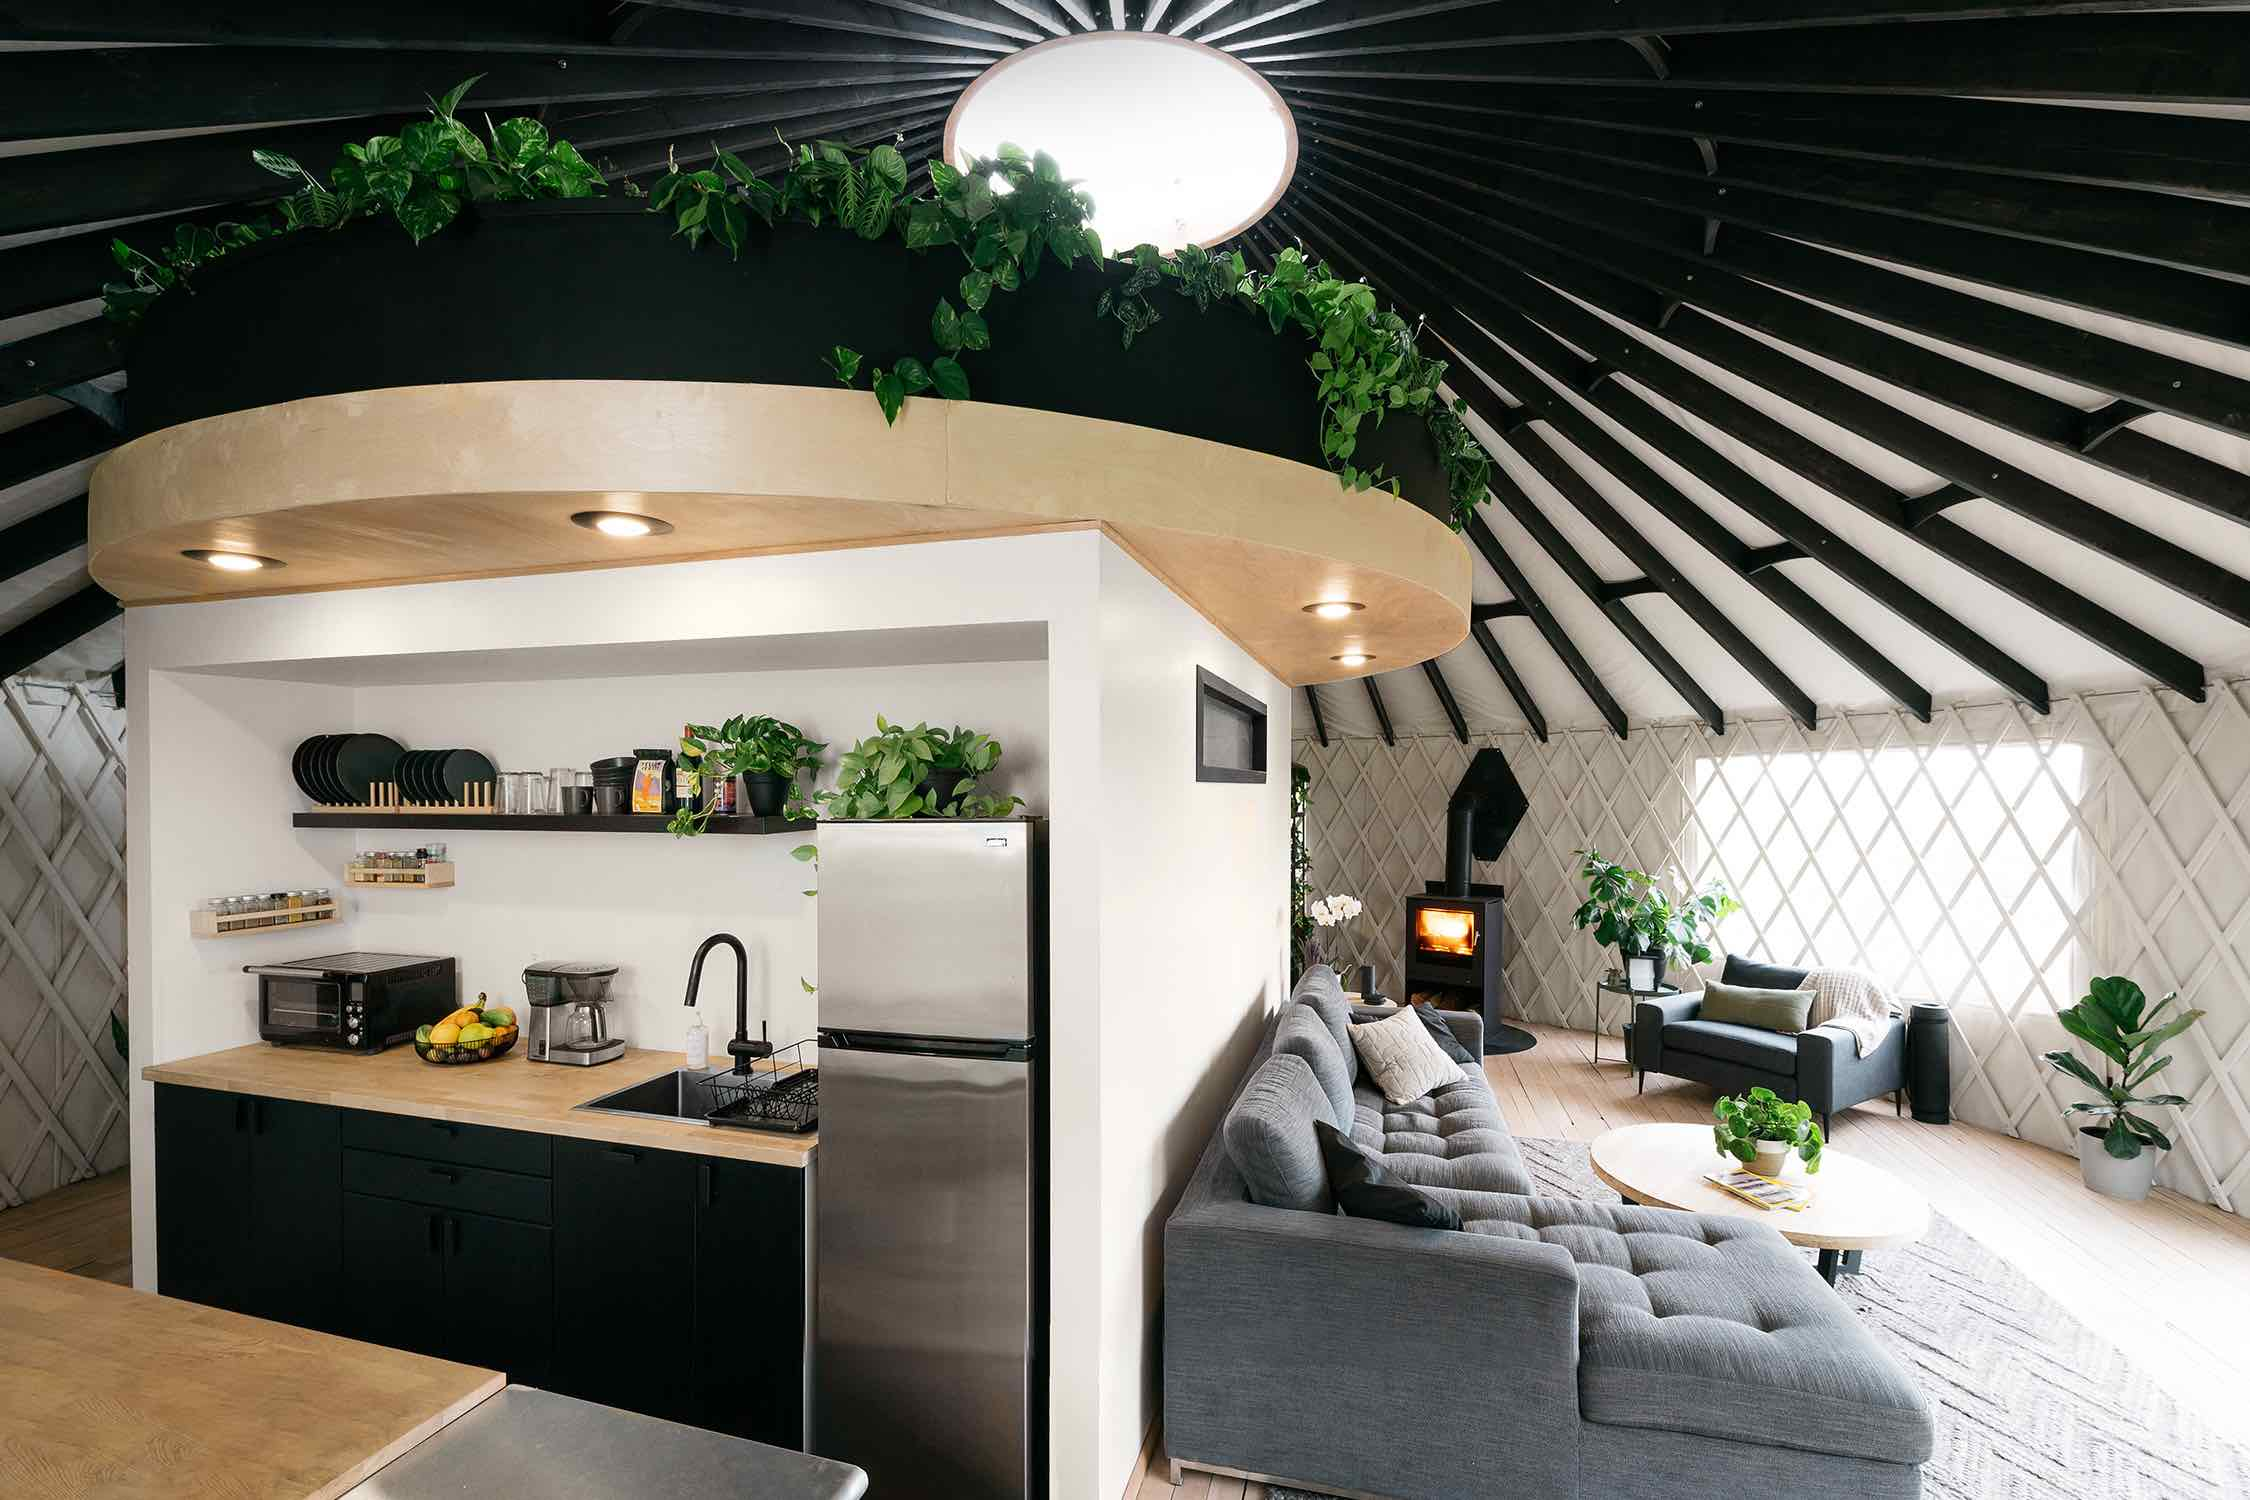 a loft located in the middle of yurt